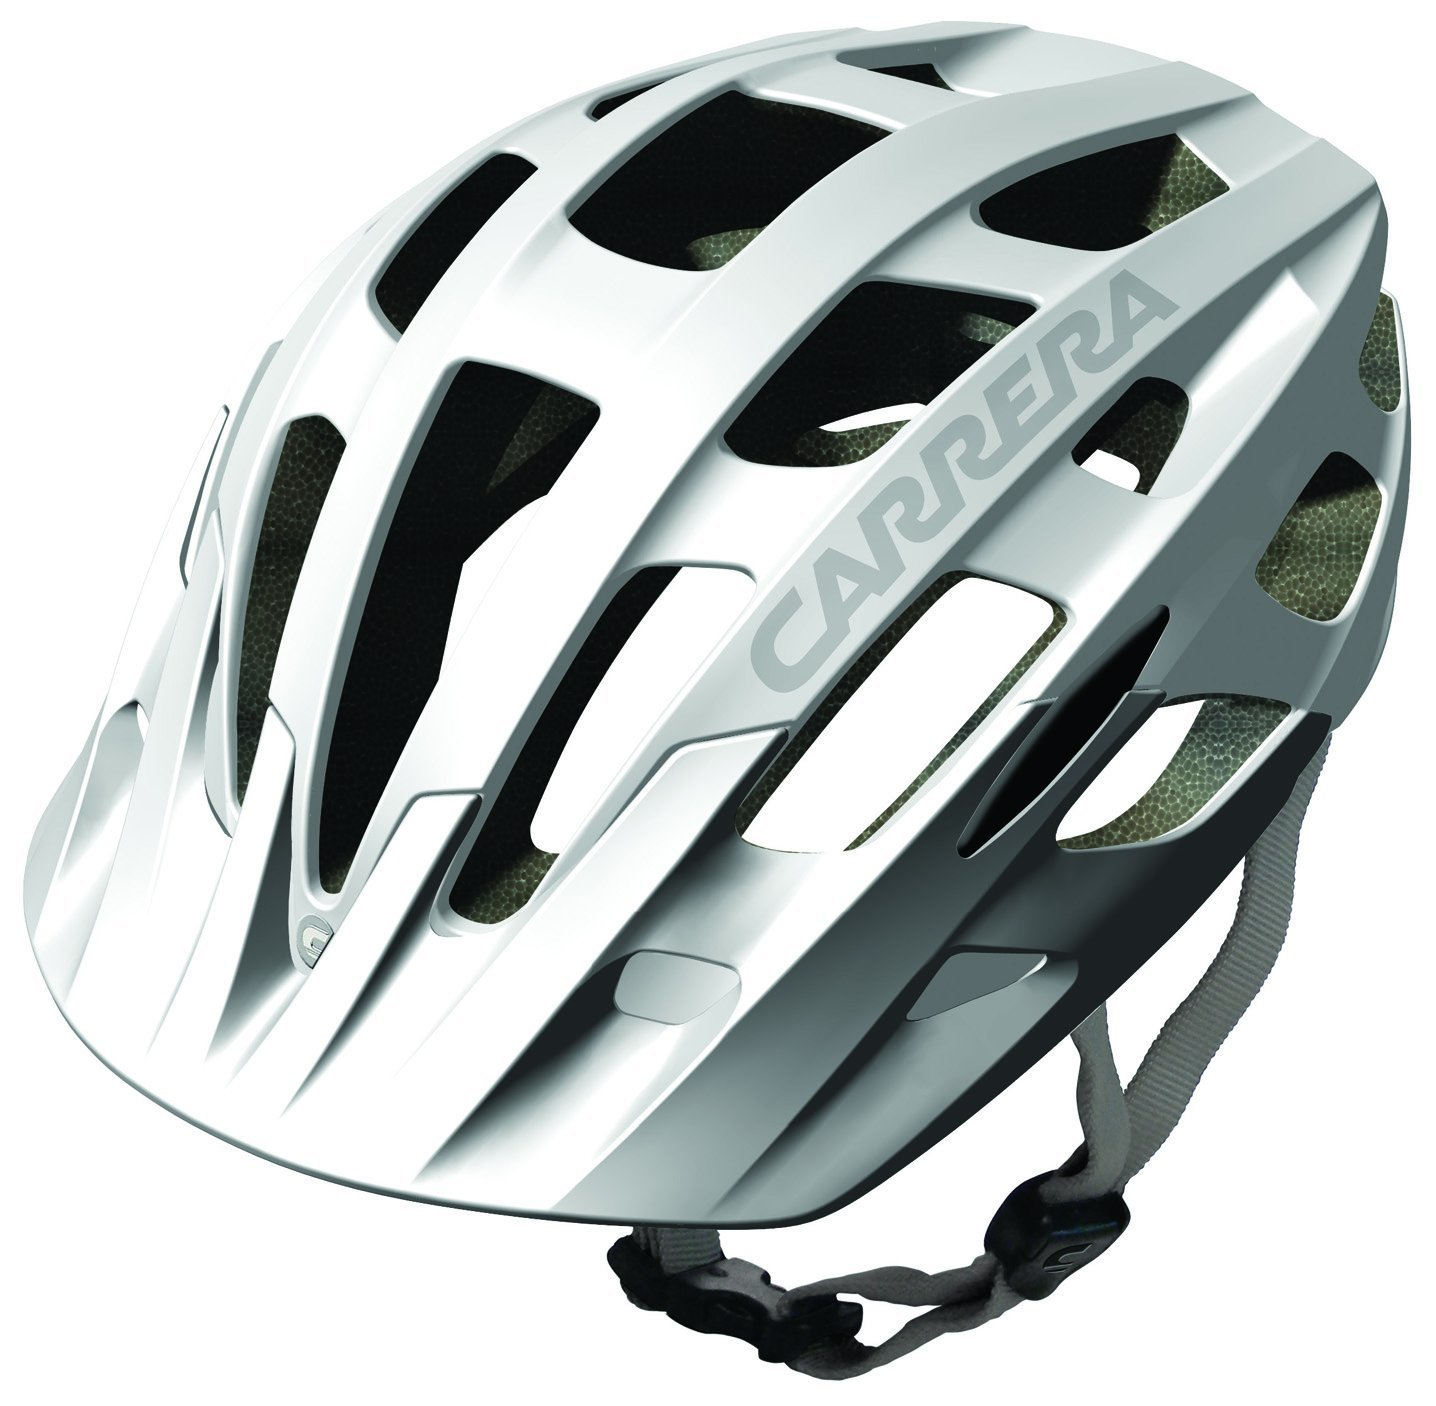 Large Carrera Bicycle Helmets